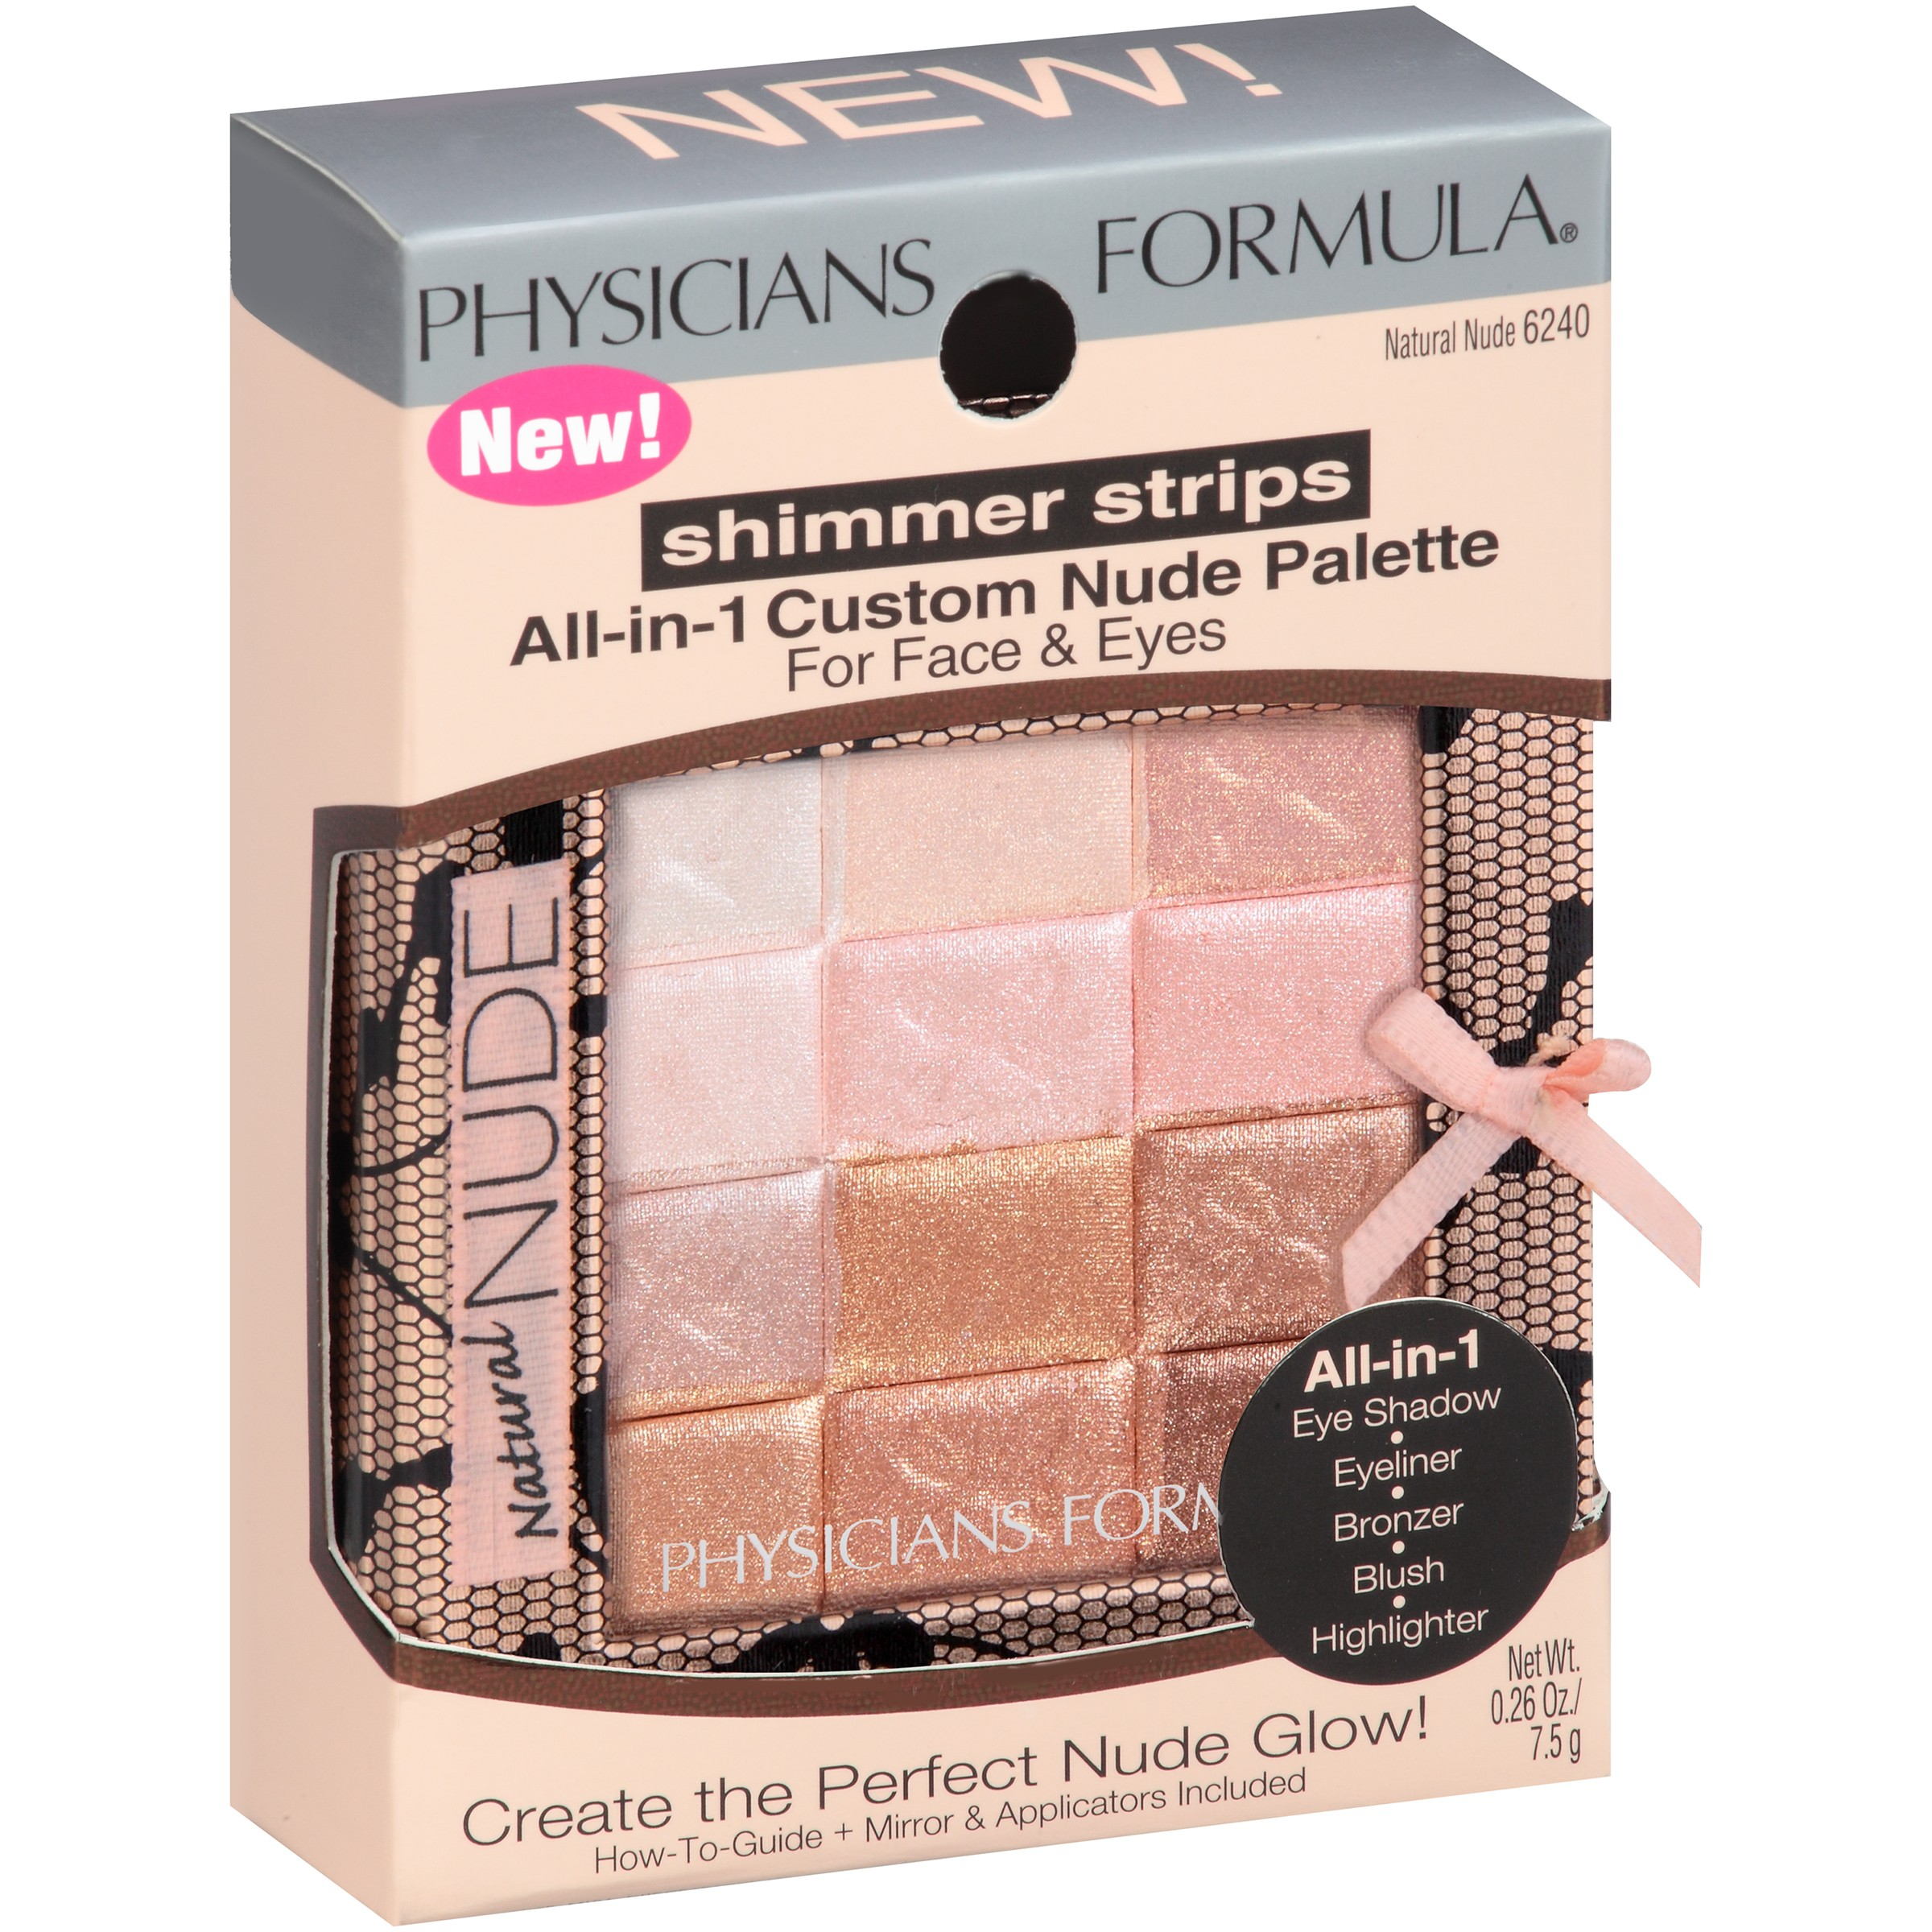 Physicians Formula Shimmer Strips All In 1 Custom Natural Nude 6240